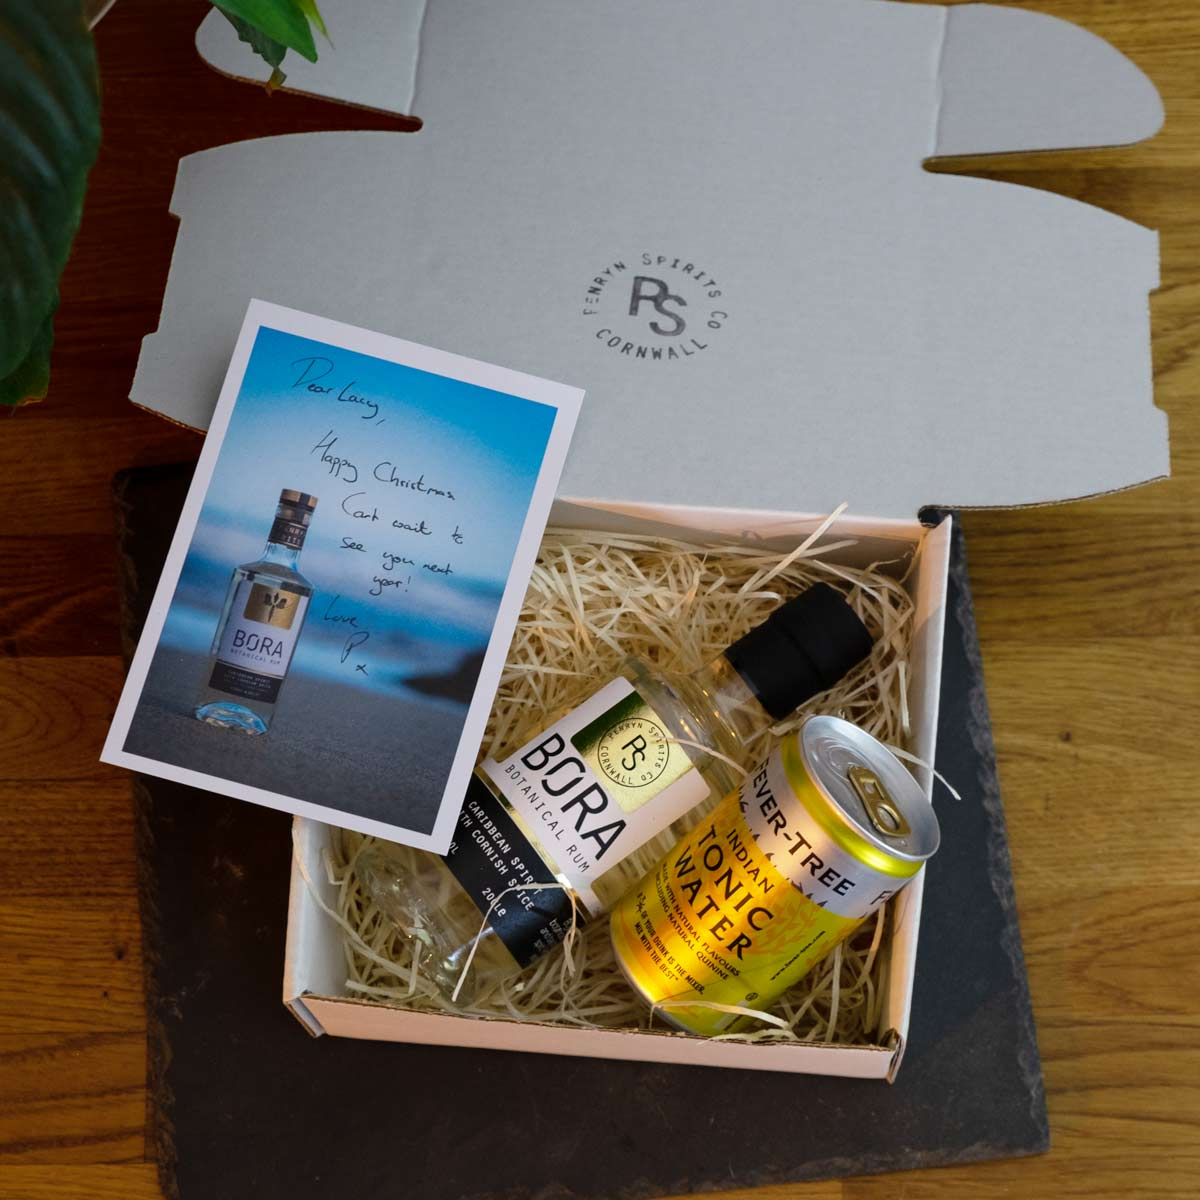 BORA and Tonic in a gift pack